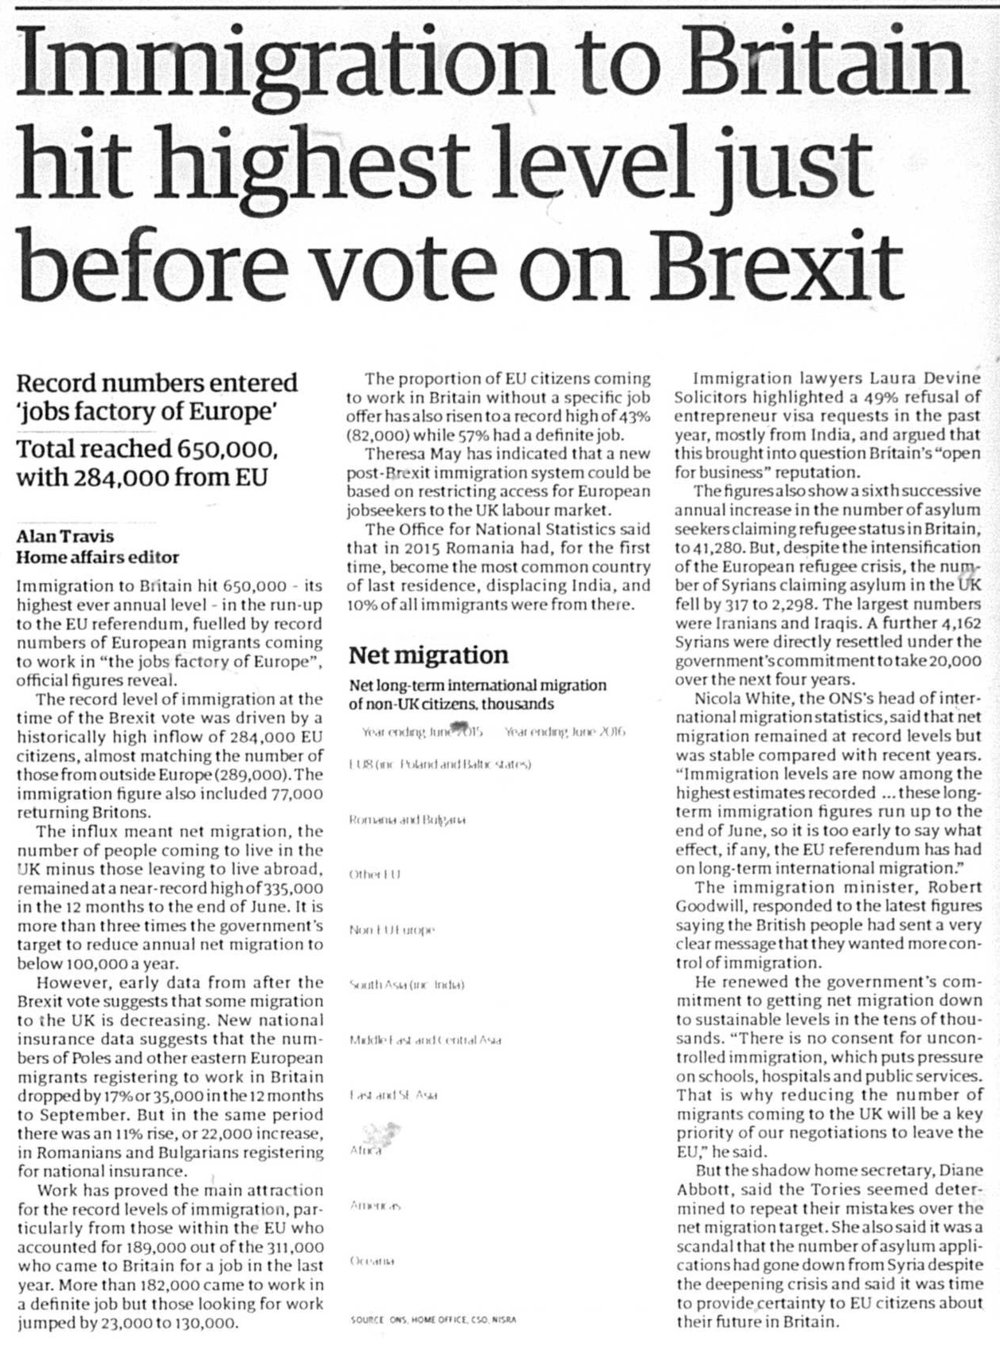 - Immigration to the UK was particularly high just before the Brexit referendum in 2016 but seems to have started to reduce since.This article, 'Immigration to Britain hit highest level just before vote on Brexit', details some of the statistics involved.Author: Alan TravisThe Guardian; London (UK), 2 December 2016© Guardian Newspapers Limited Dec 2, 2016